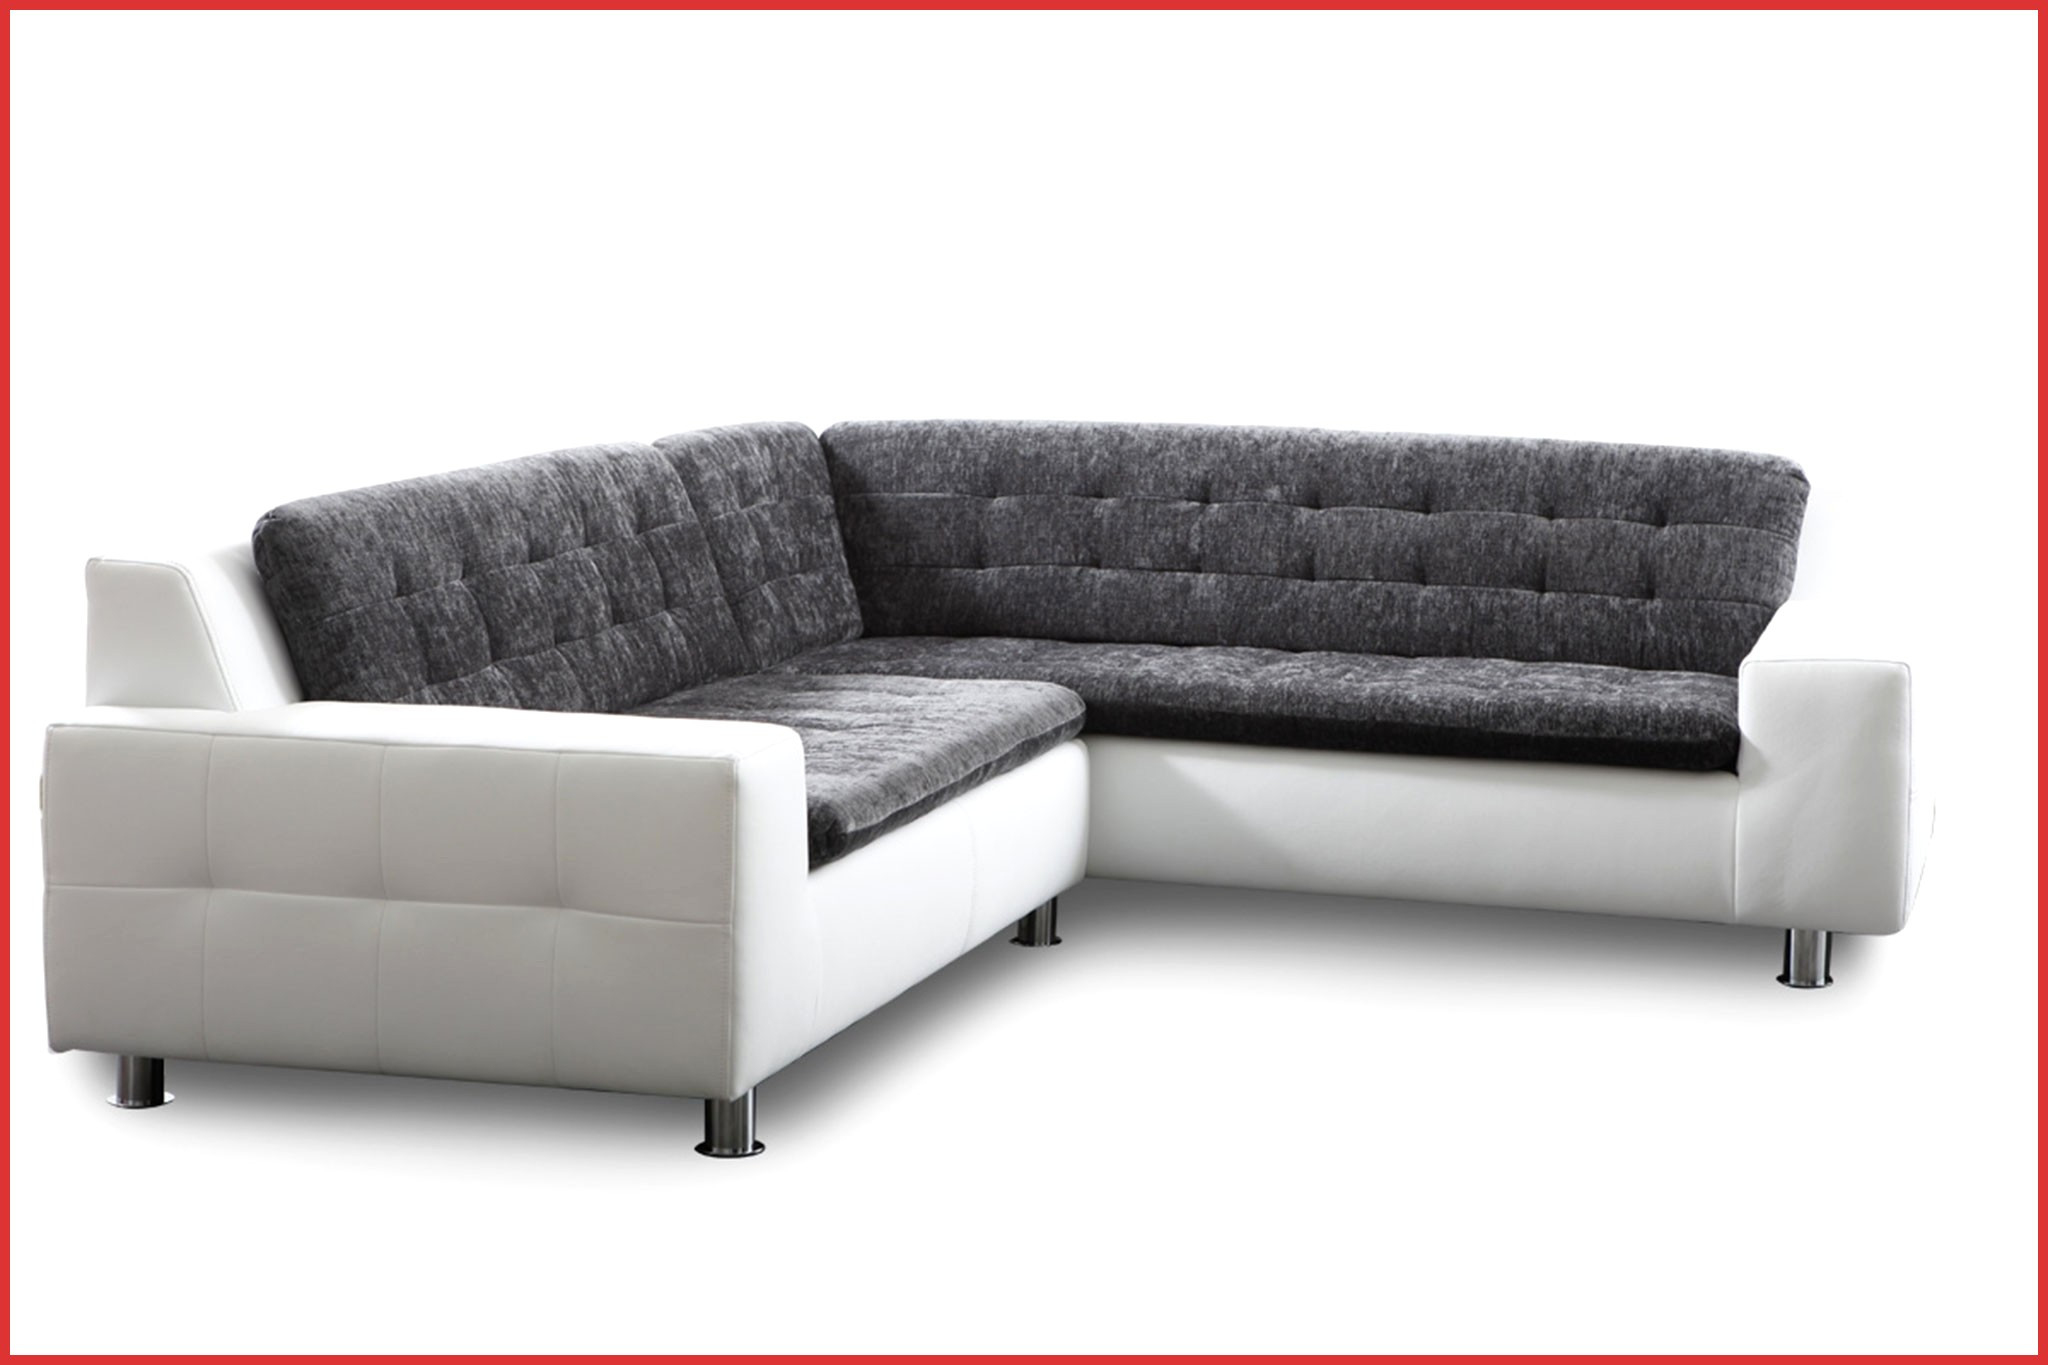 Canapé Convertible 3 Places Ikea Luxe Collection Canap Convertible 3 Places Conforama 33 Canape Marina Luxe Lit 28